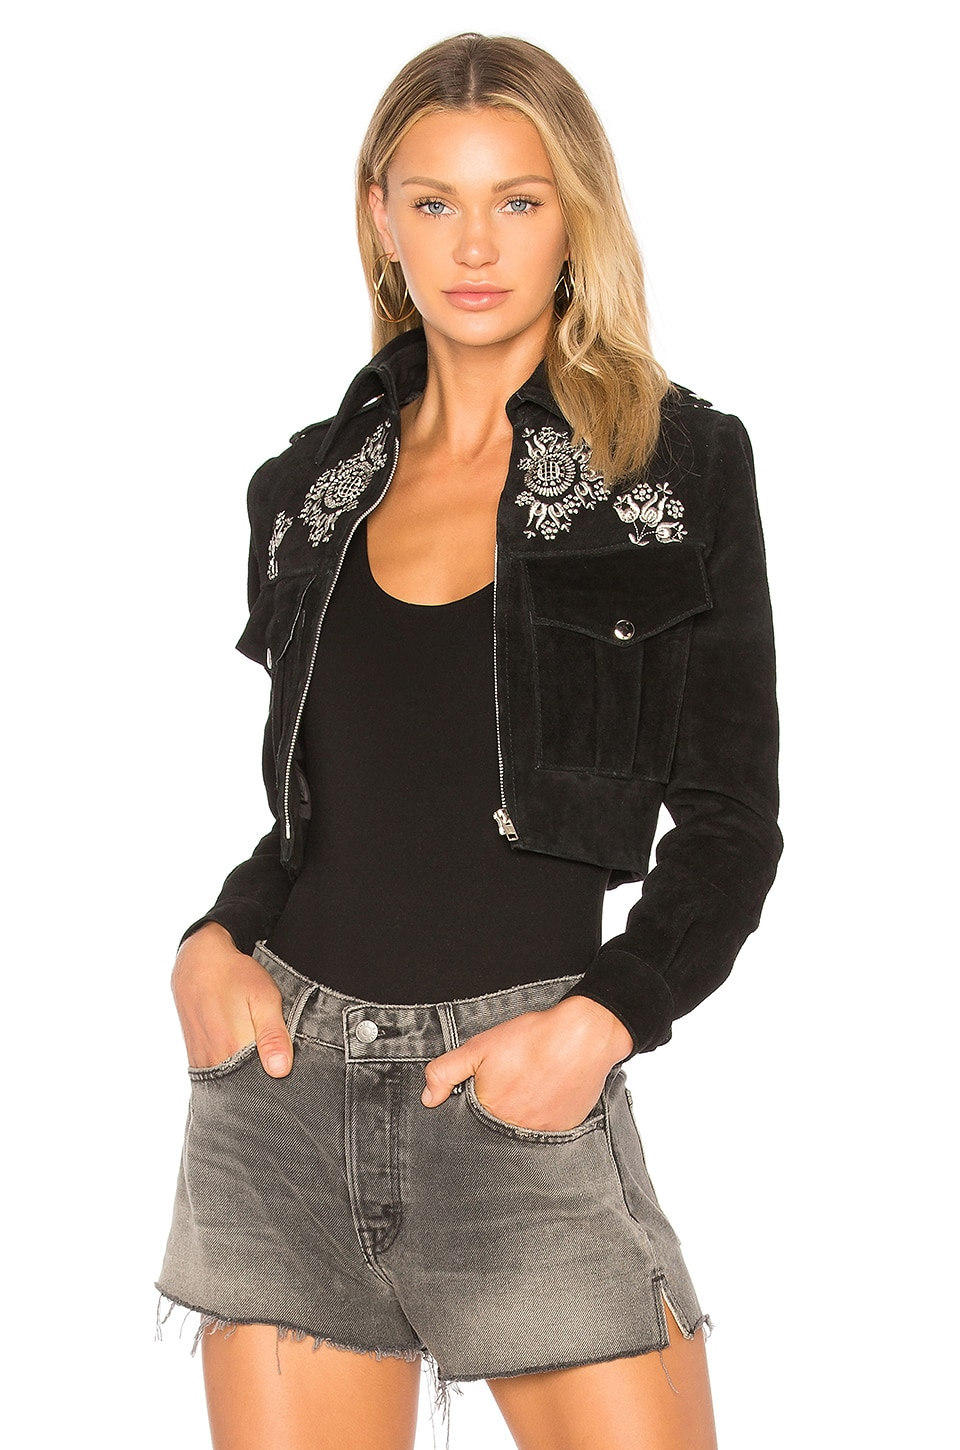 Embroidered Suede Jacket by Understated Leather